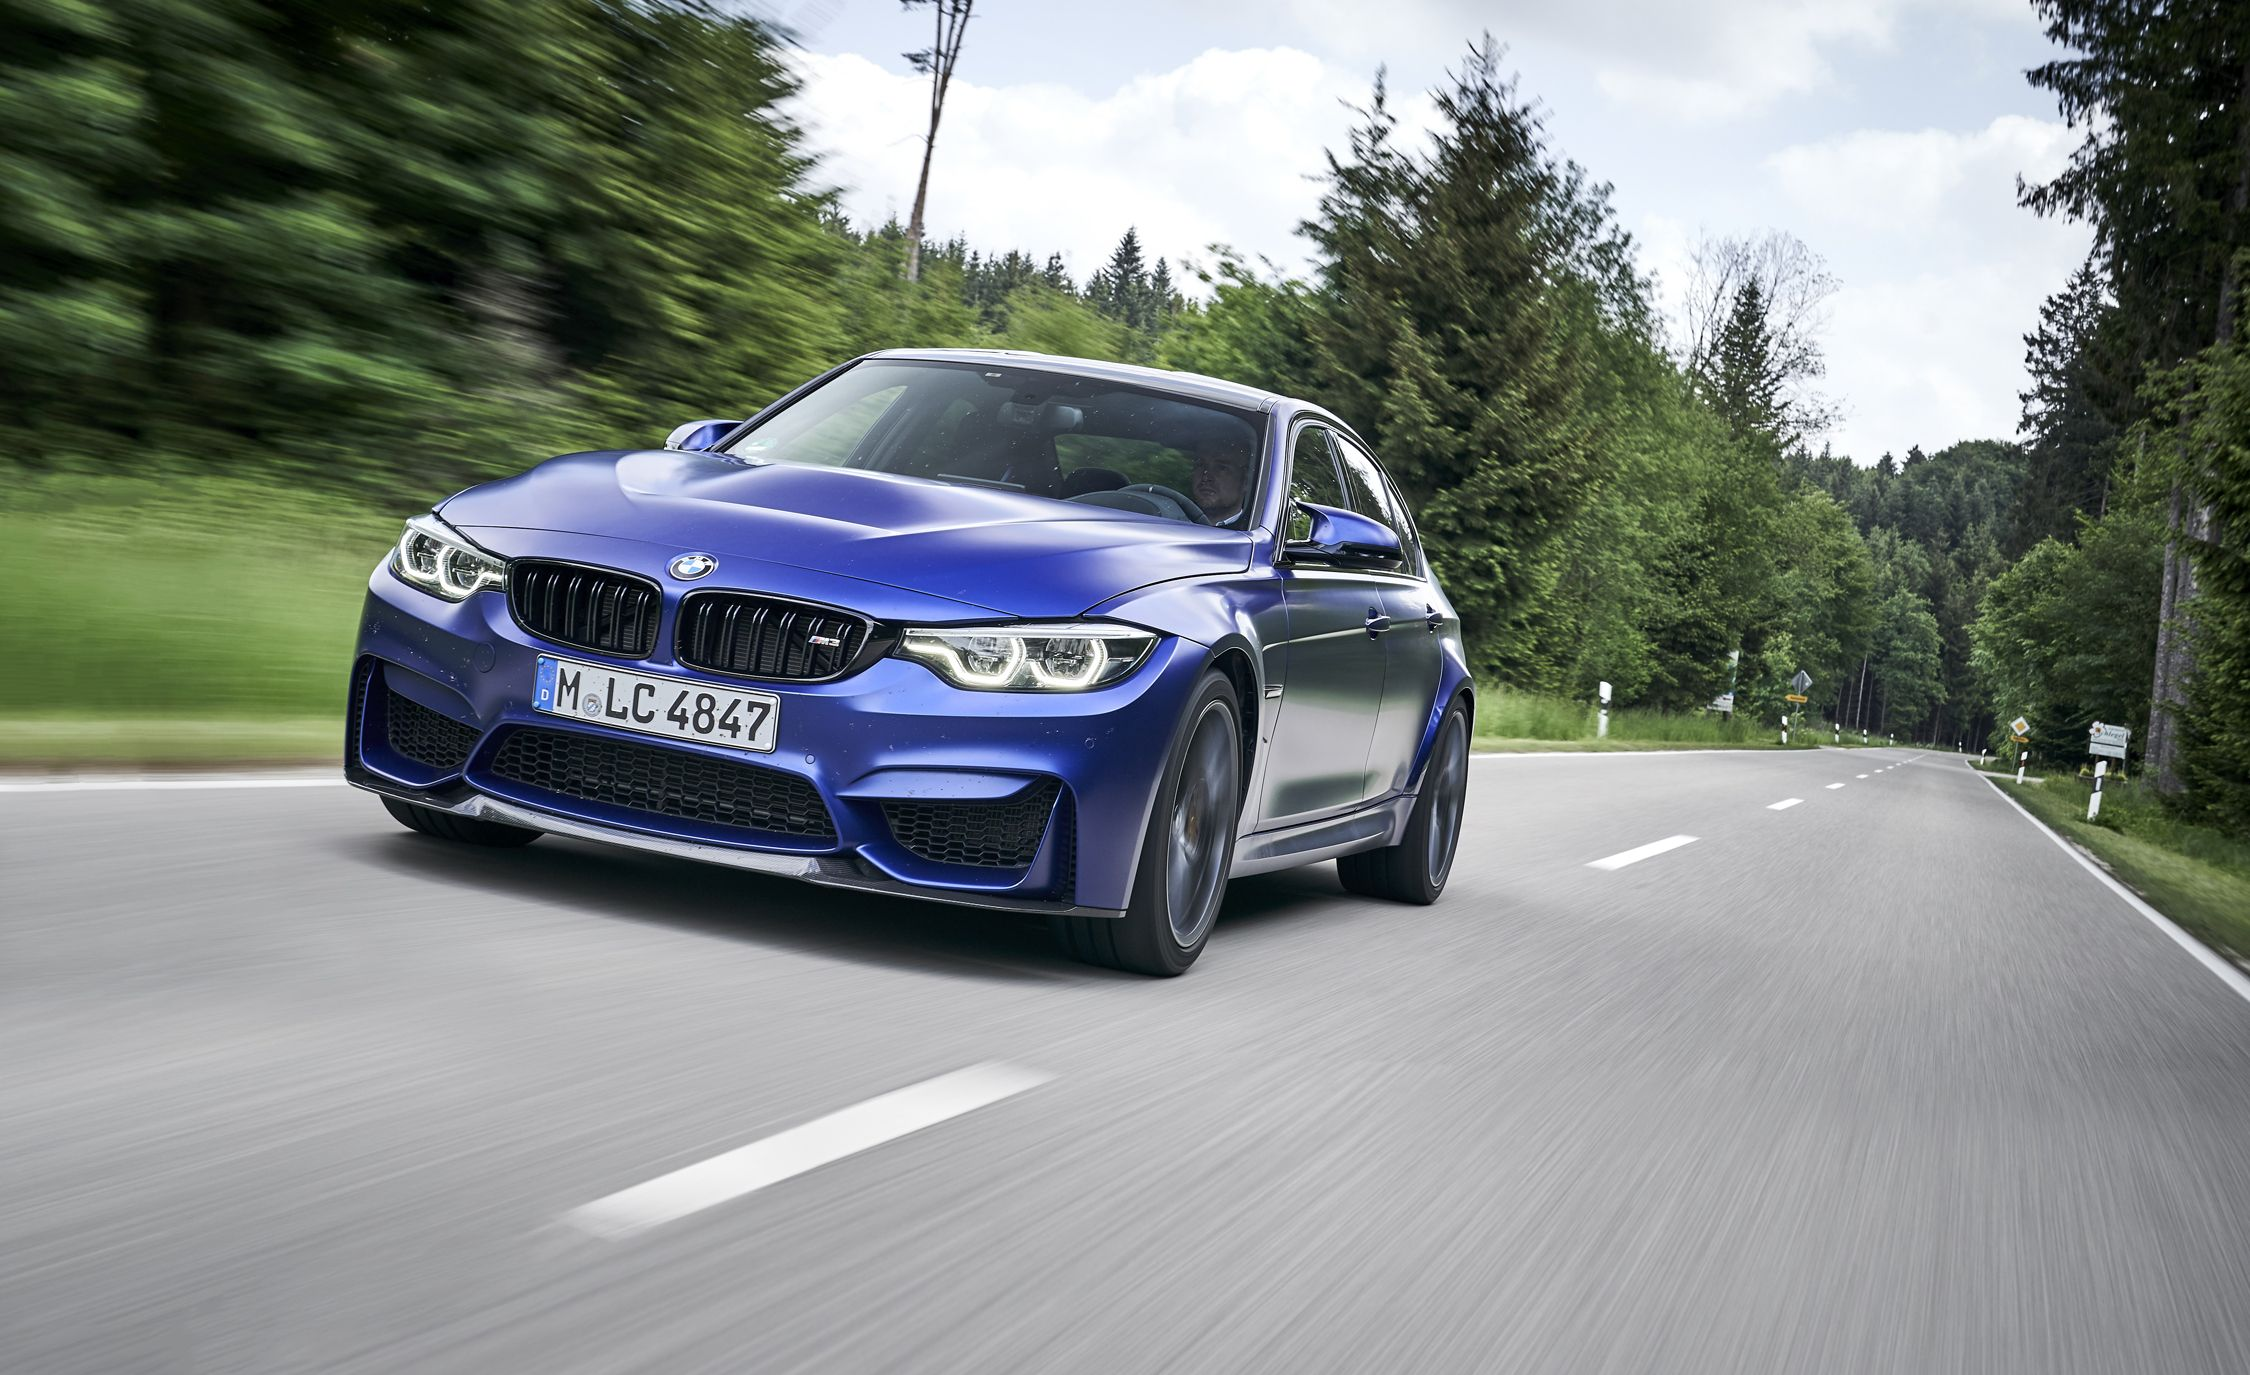 First Drive Of The Bmw M3 Cs The Best One Yet Review Car And Driver